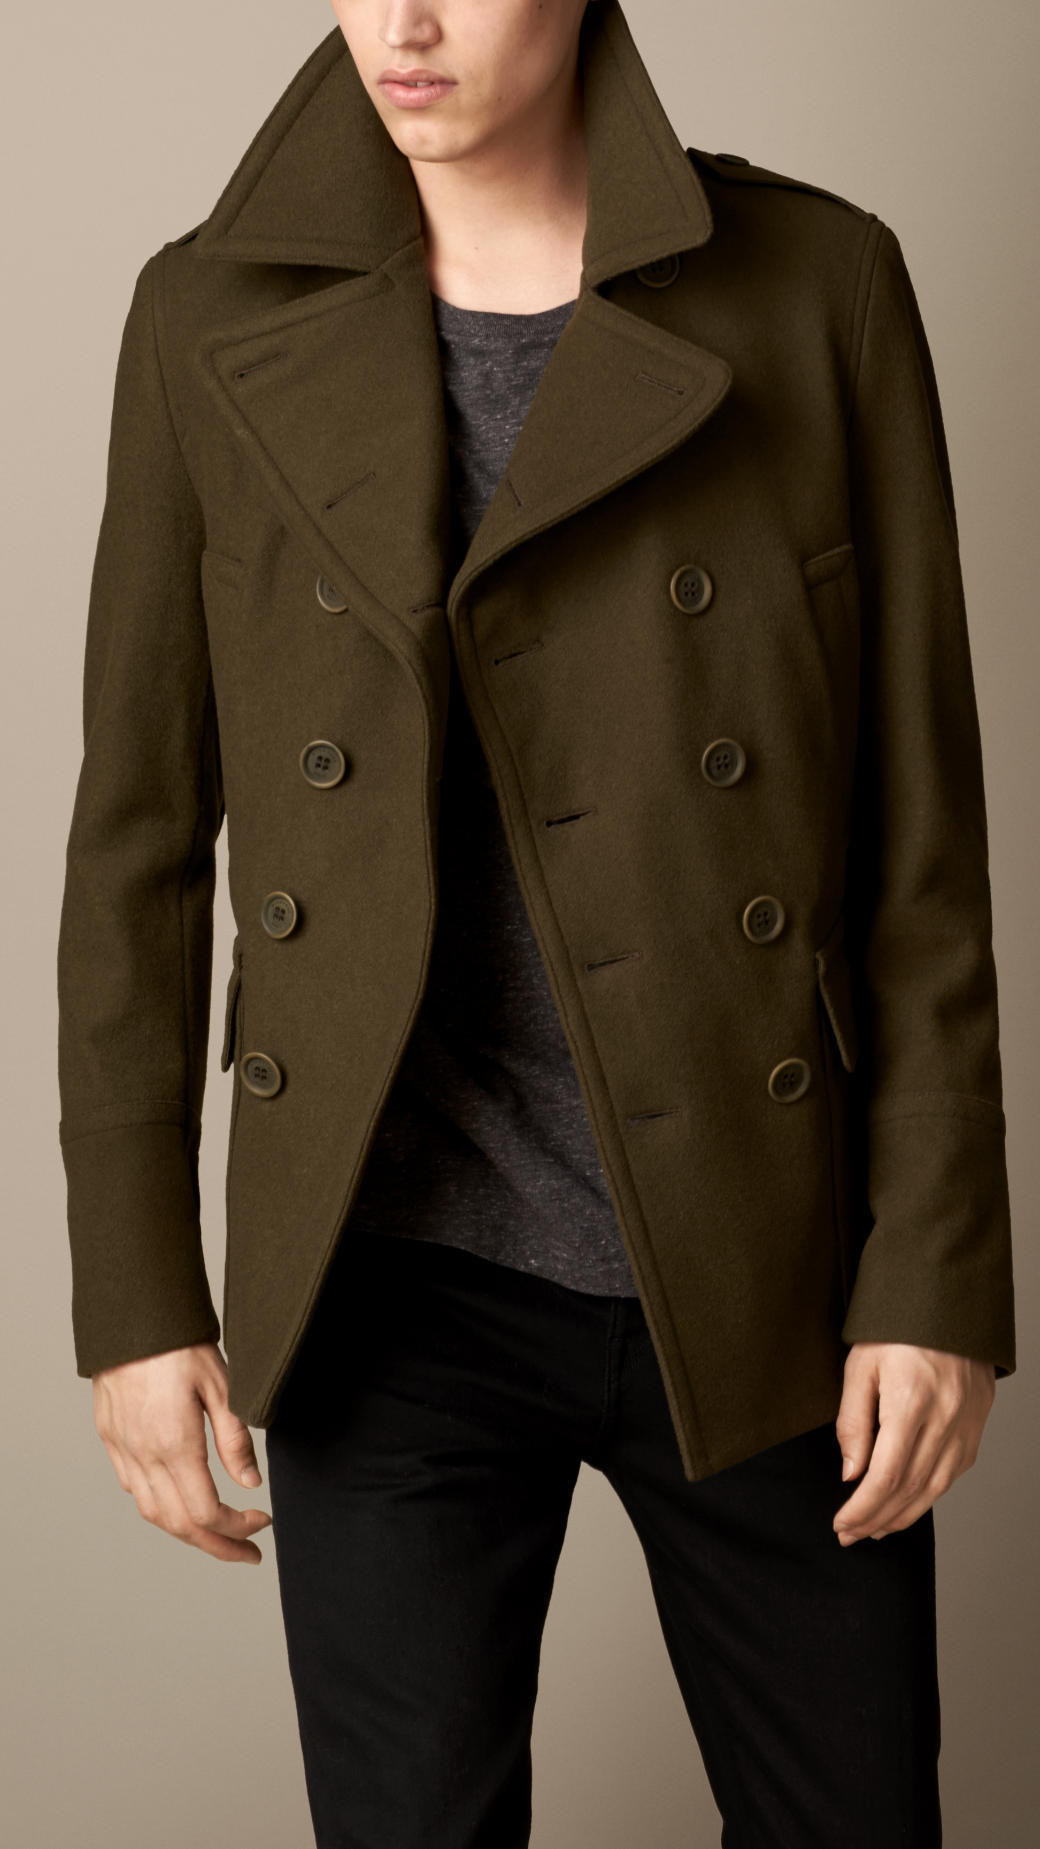 Mens Peacoat. Find a coat that keeps you warm while tailoring to your lifestyle with a men's peacoat. A wool coat is a must-have for every man, and the many different types allow you to find the coat that is comfortable for you. A peacoat is a classic men's coat.